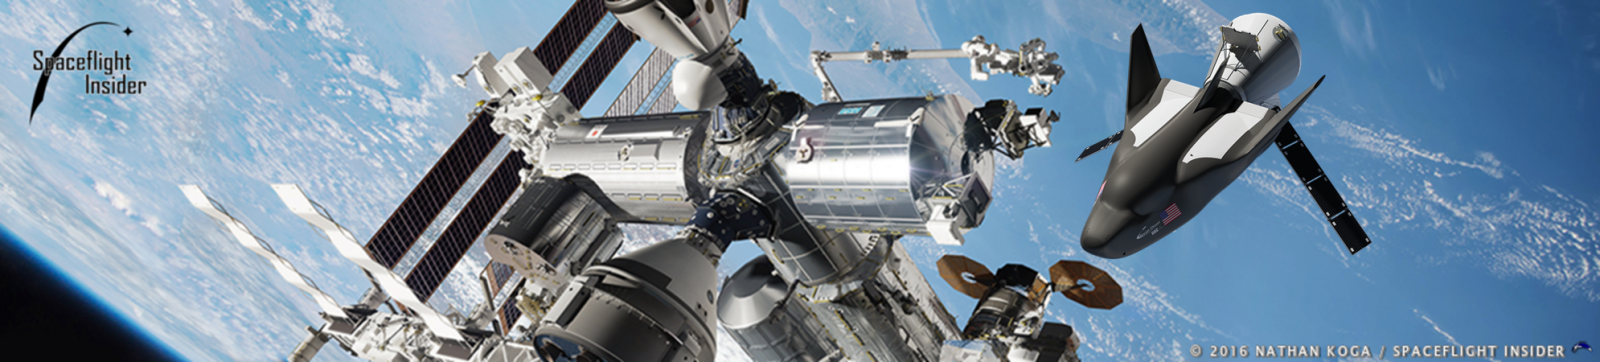 Sierra Nevada Dream Chaser spacecraft at the International Space Station